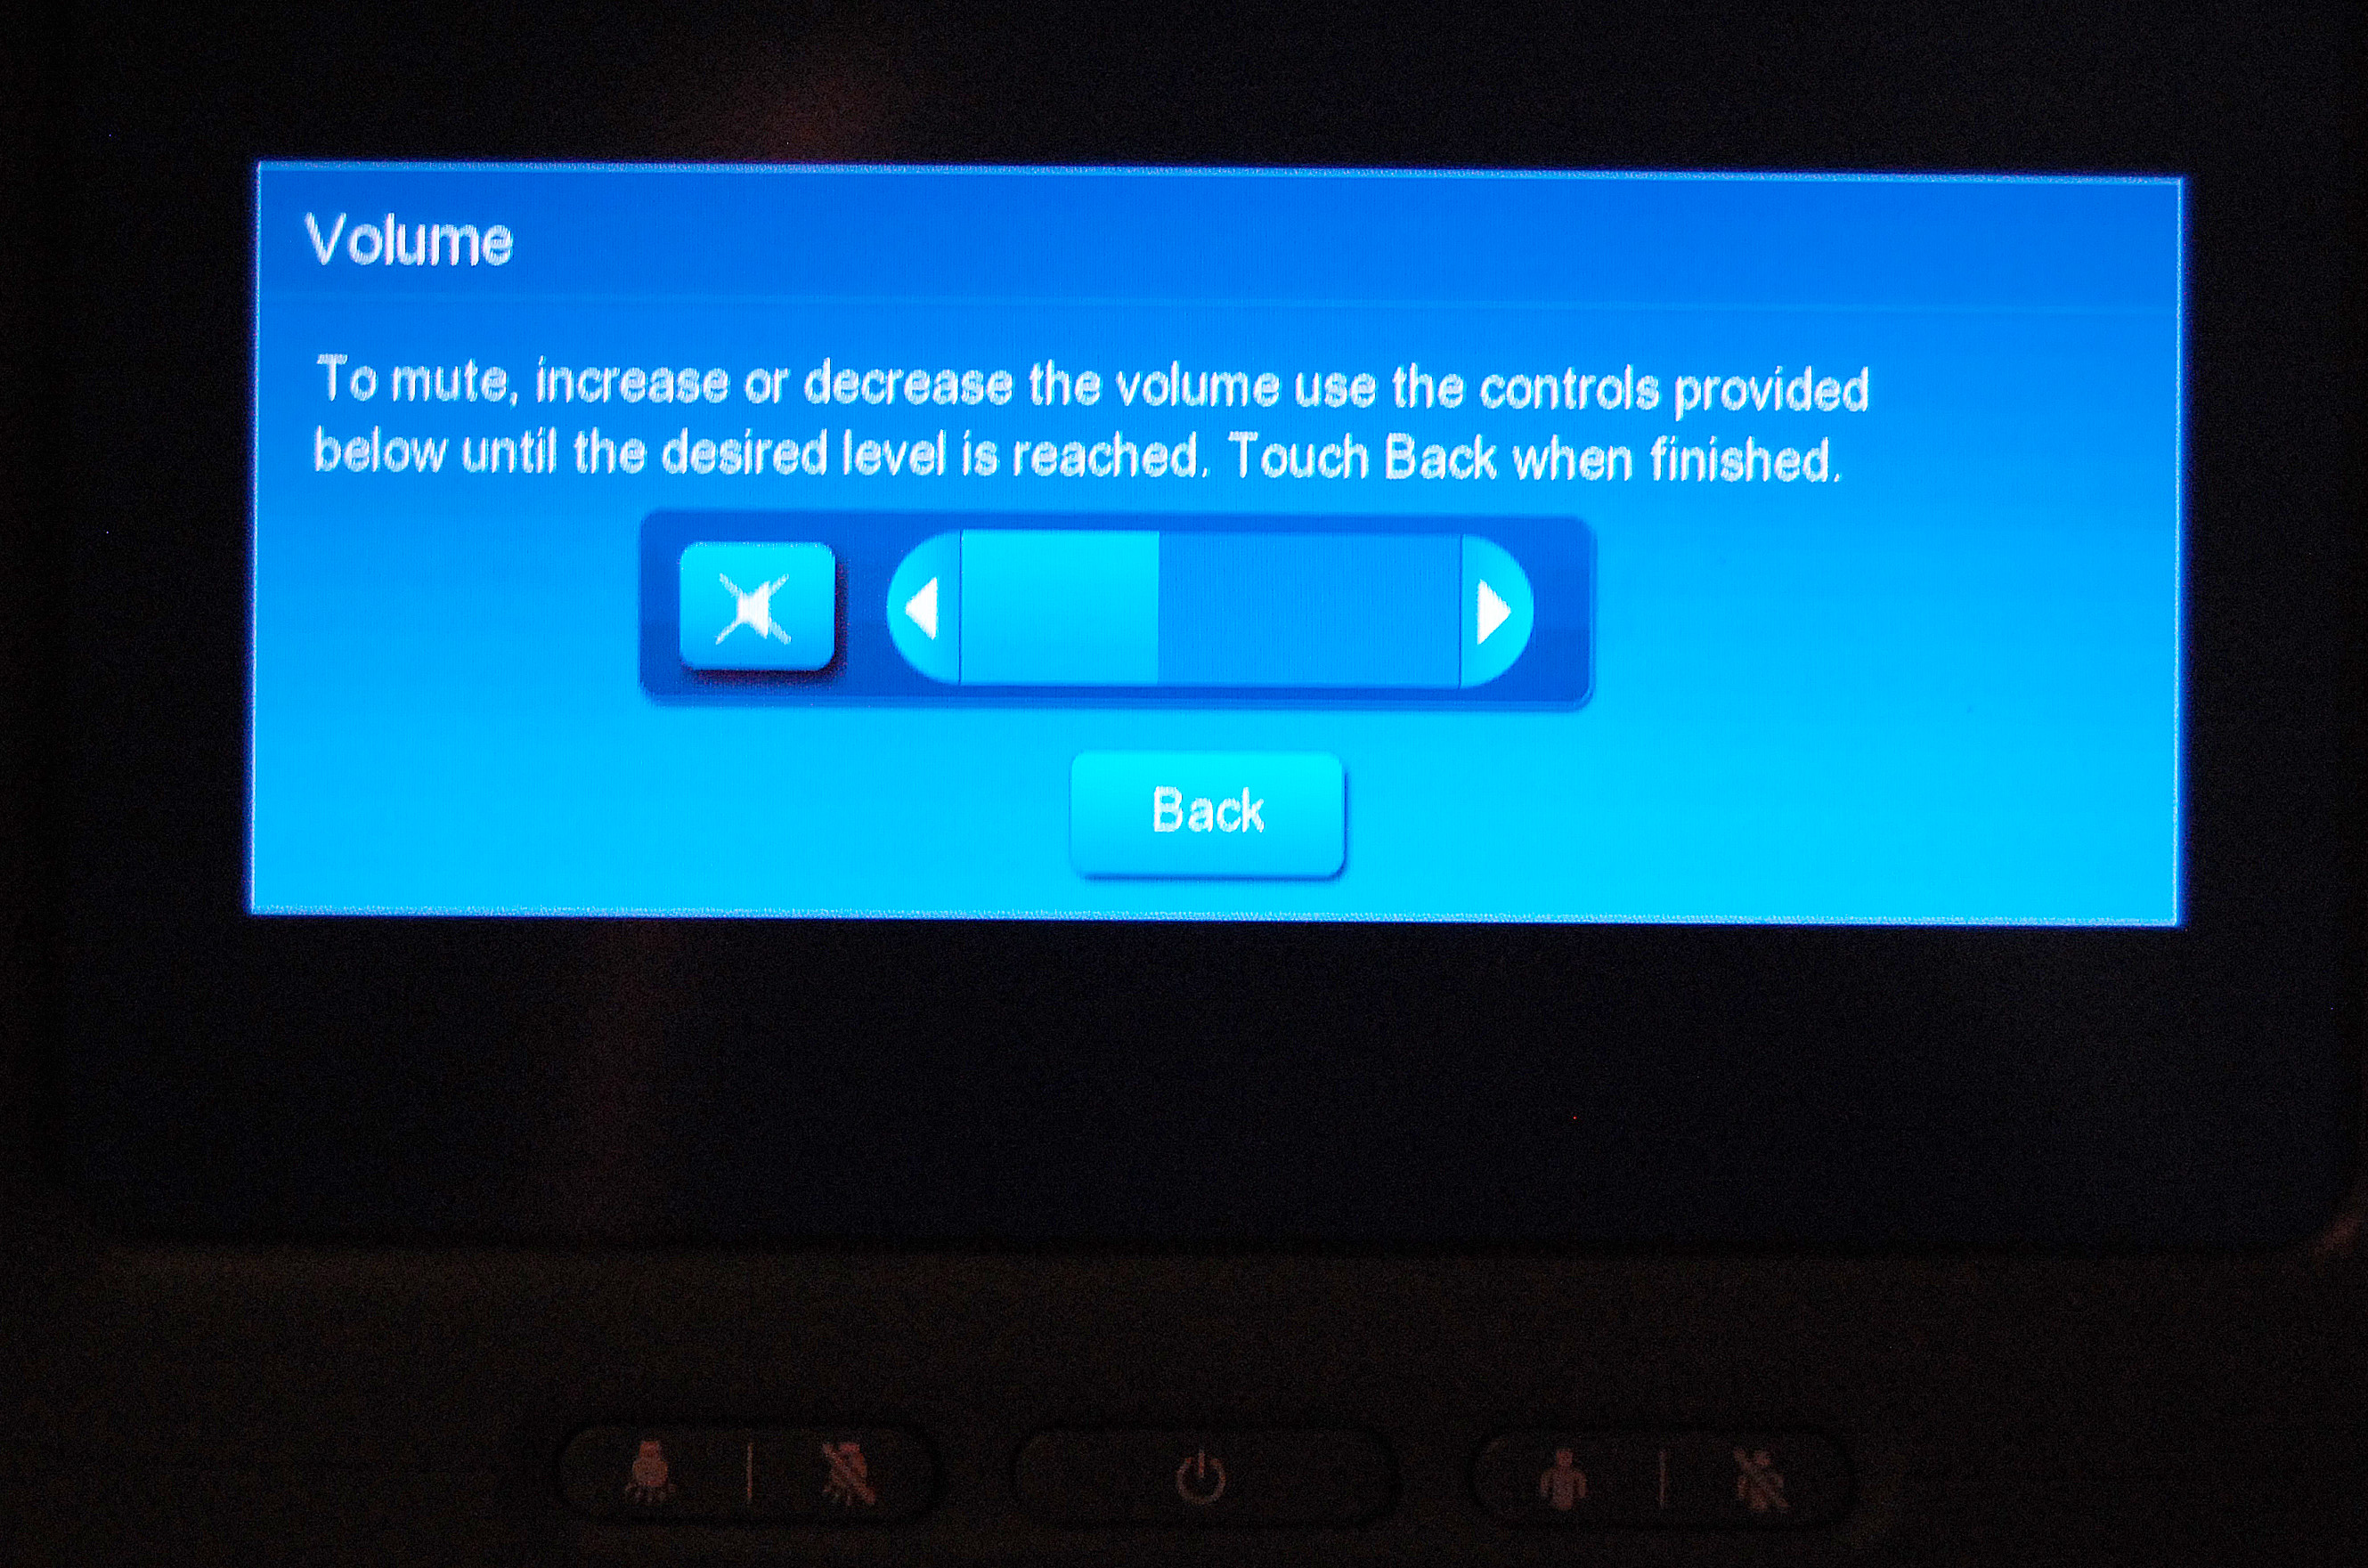 How to lockup the in-flight entertainment system on a Boeing 777